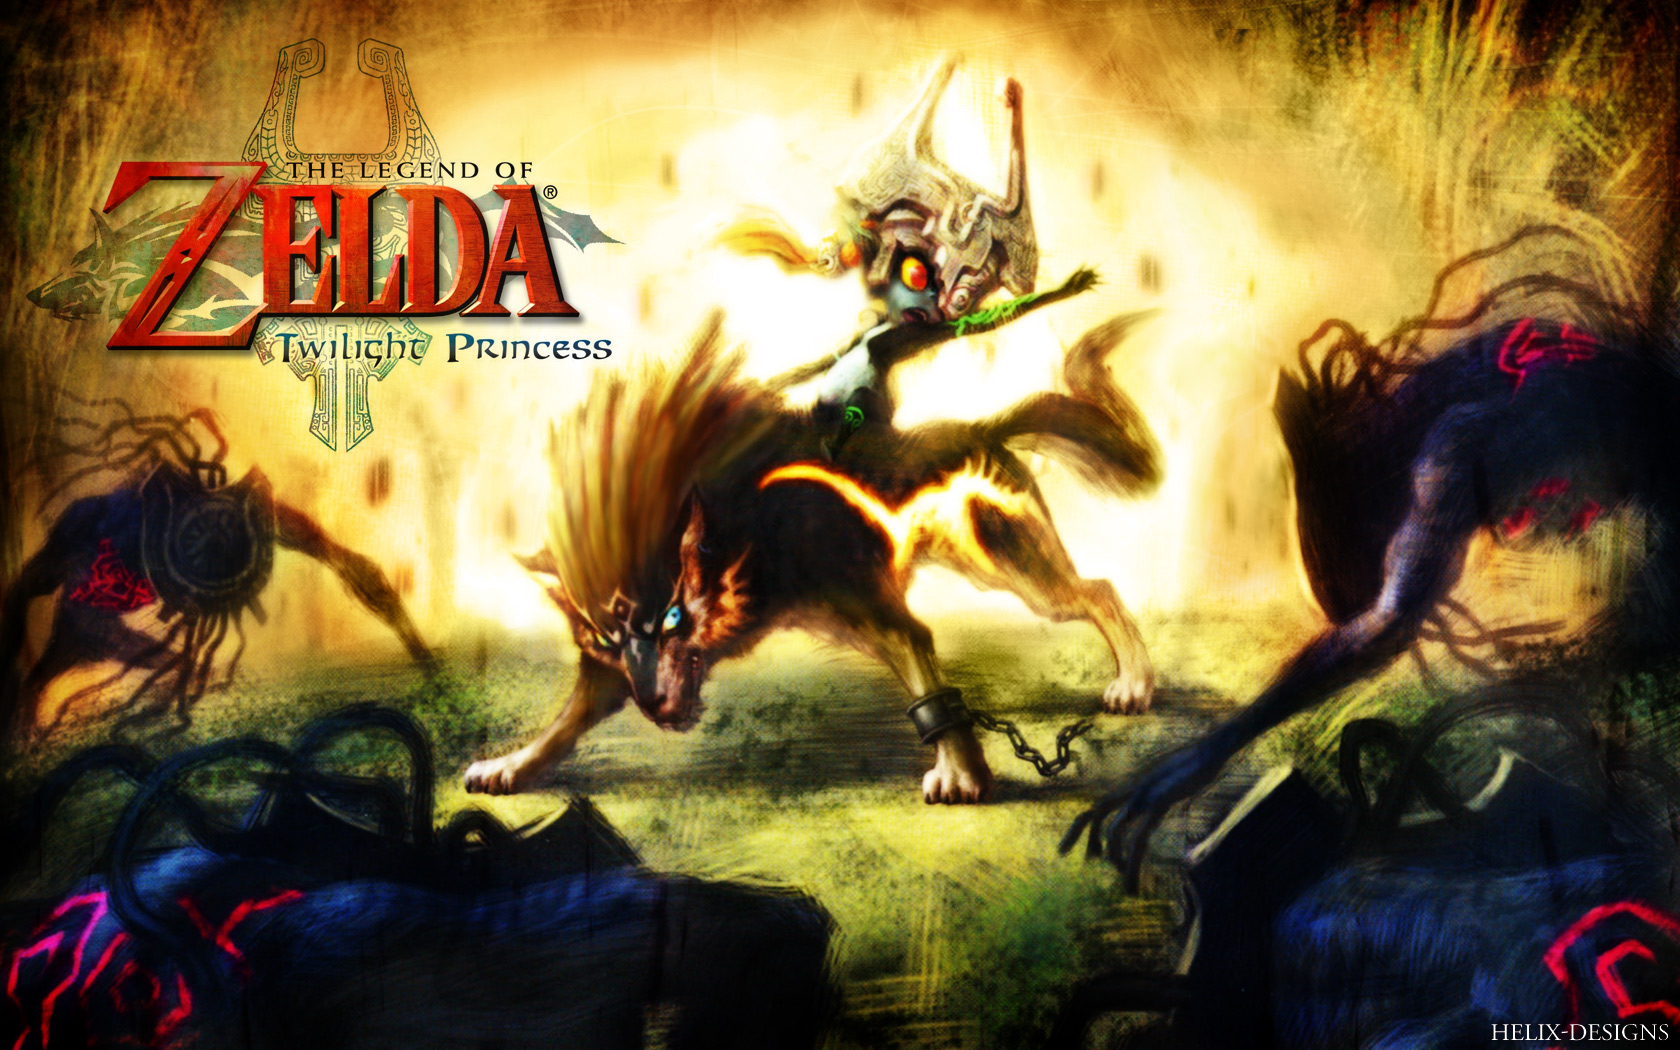 Twilight Princess Wallpaper 1680x1050 Twilight Princess The Legend 1680x1050